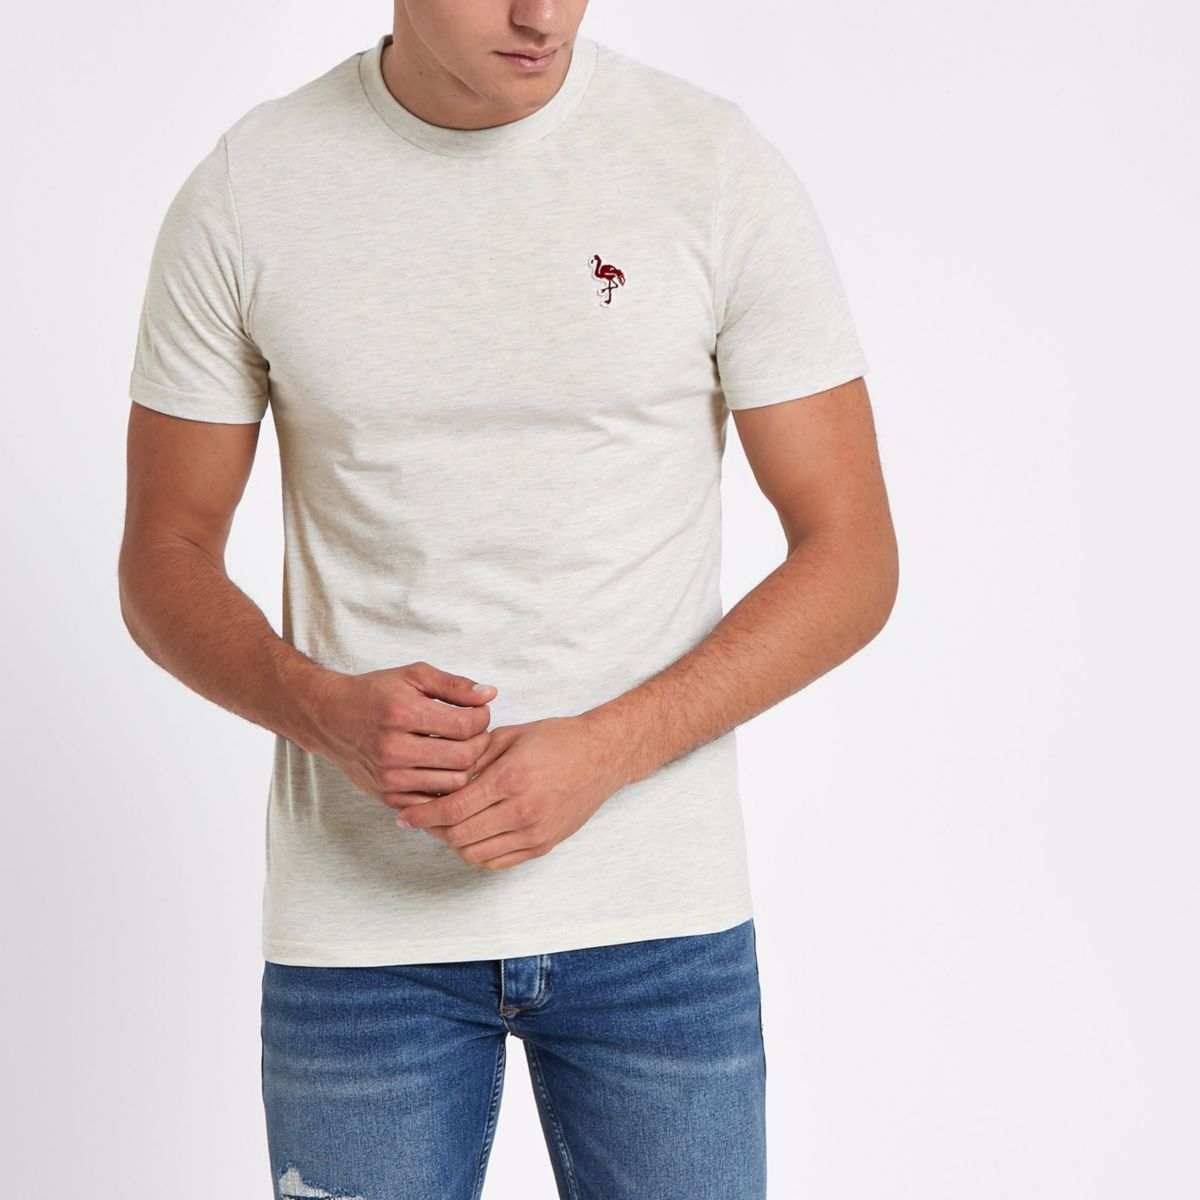 Jack & Jones white embroidered T-shirt